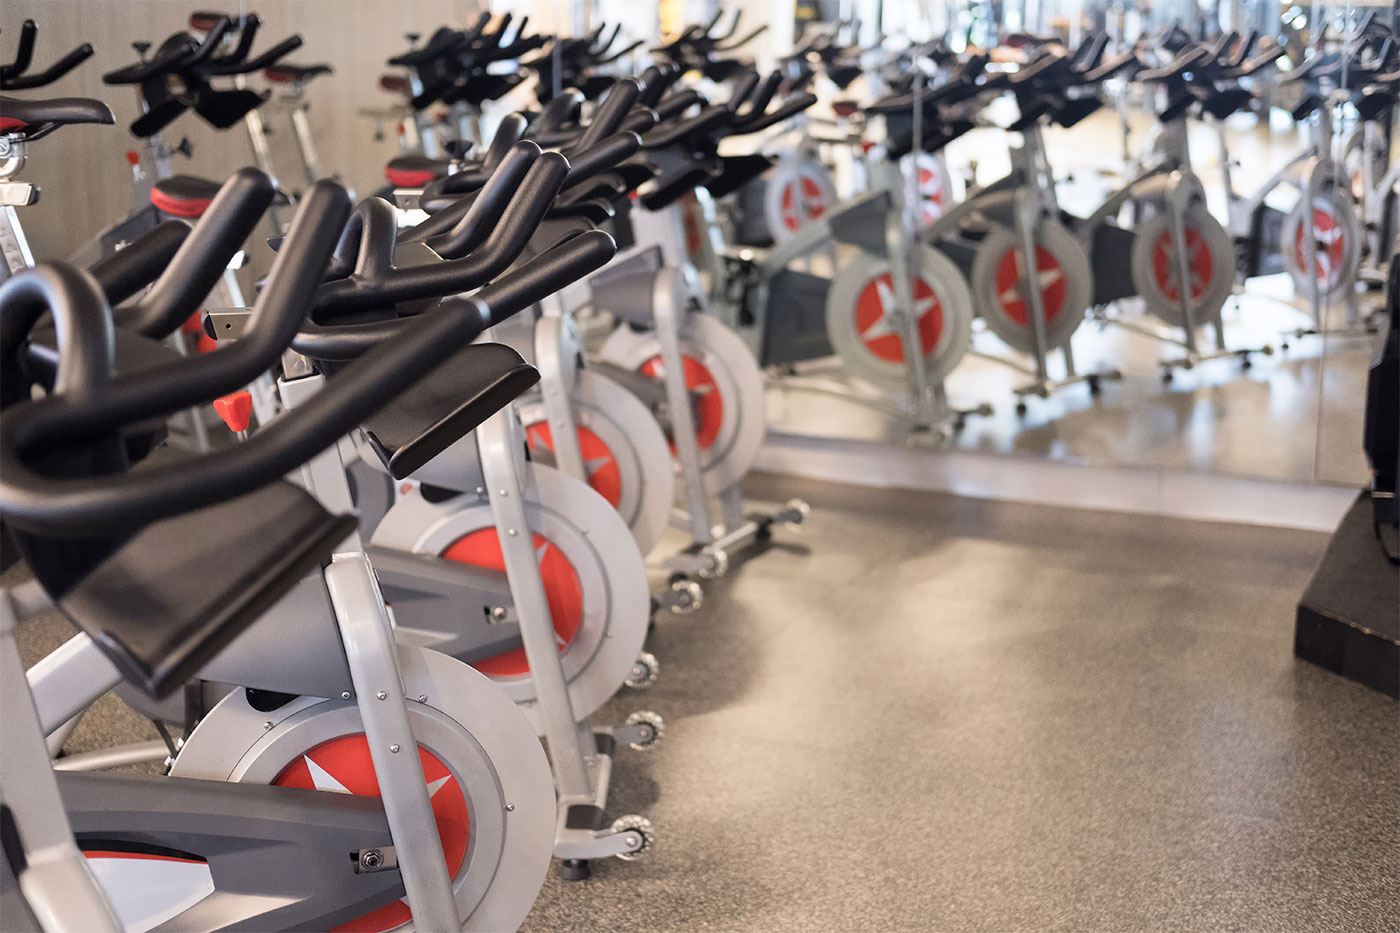 Cleaning Services for Gymnasiums - Gymnasiums and Fitness Facilities